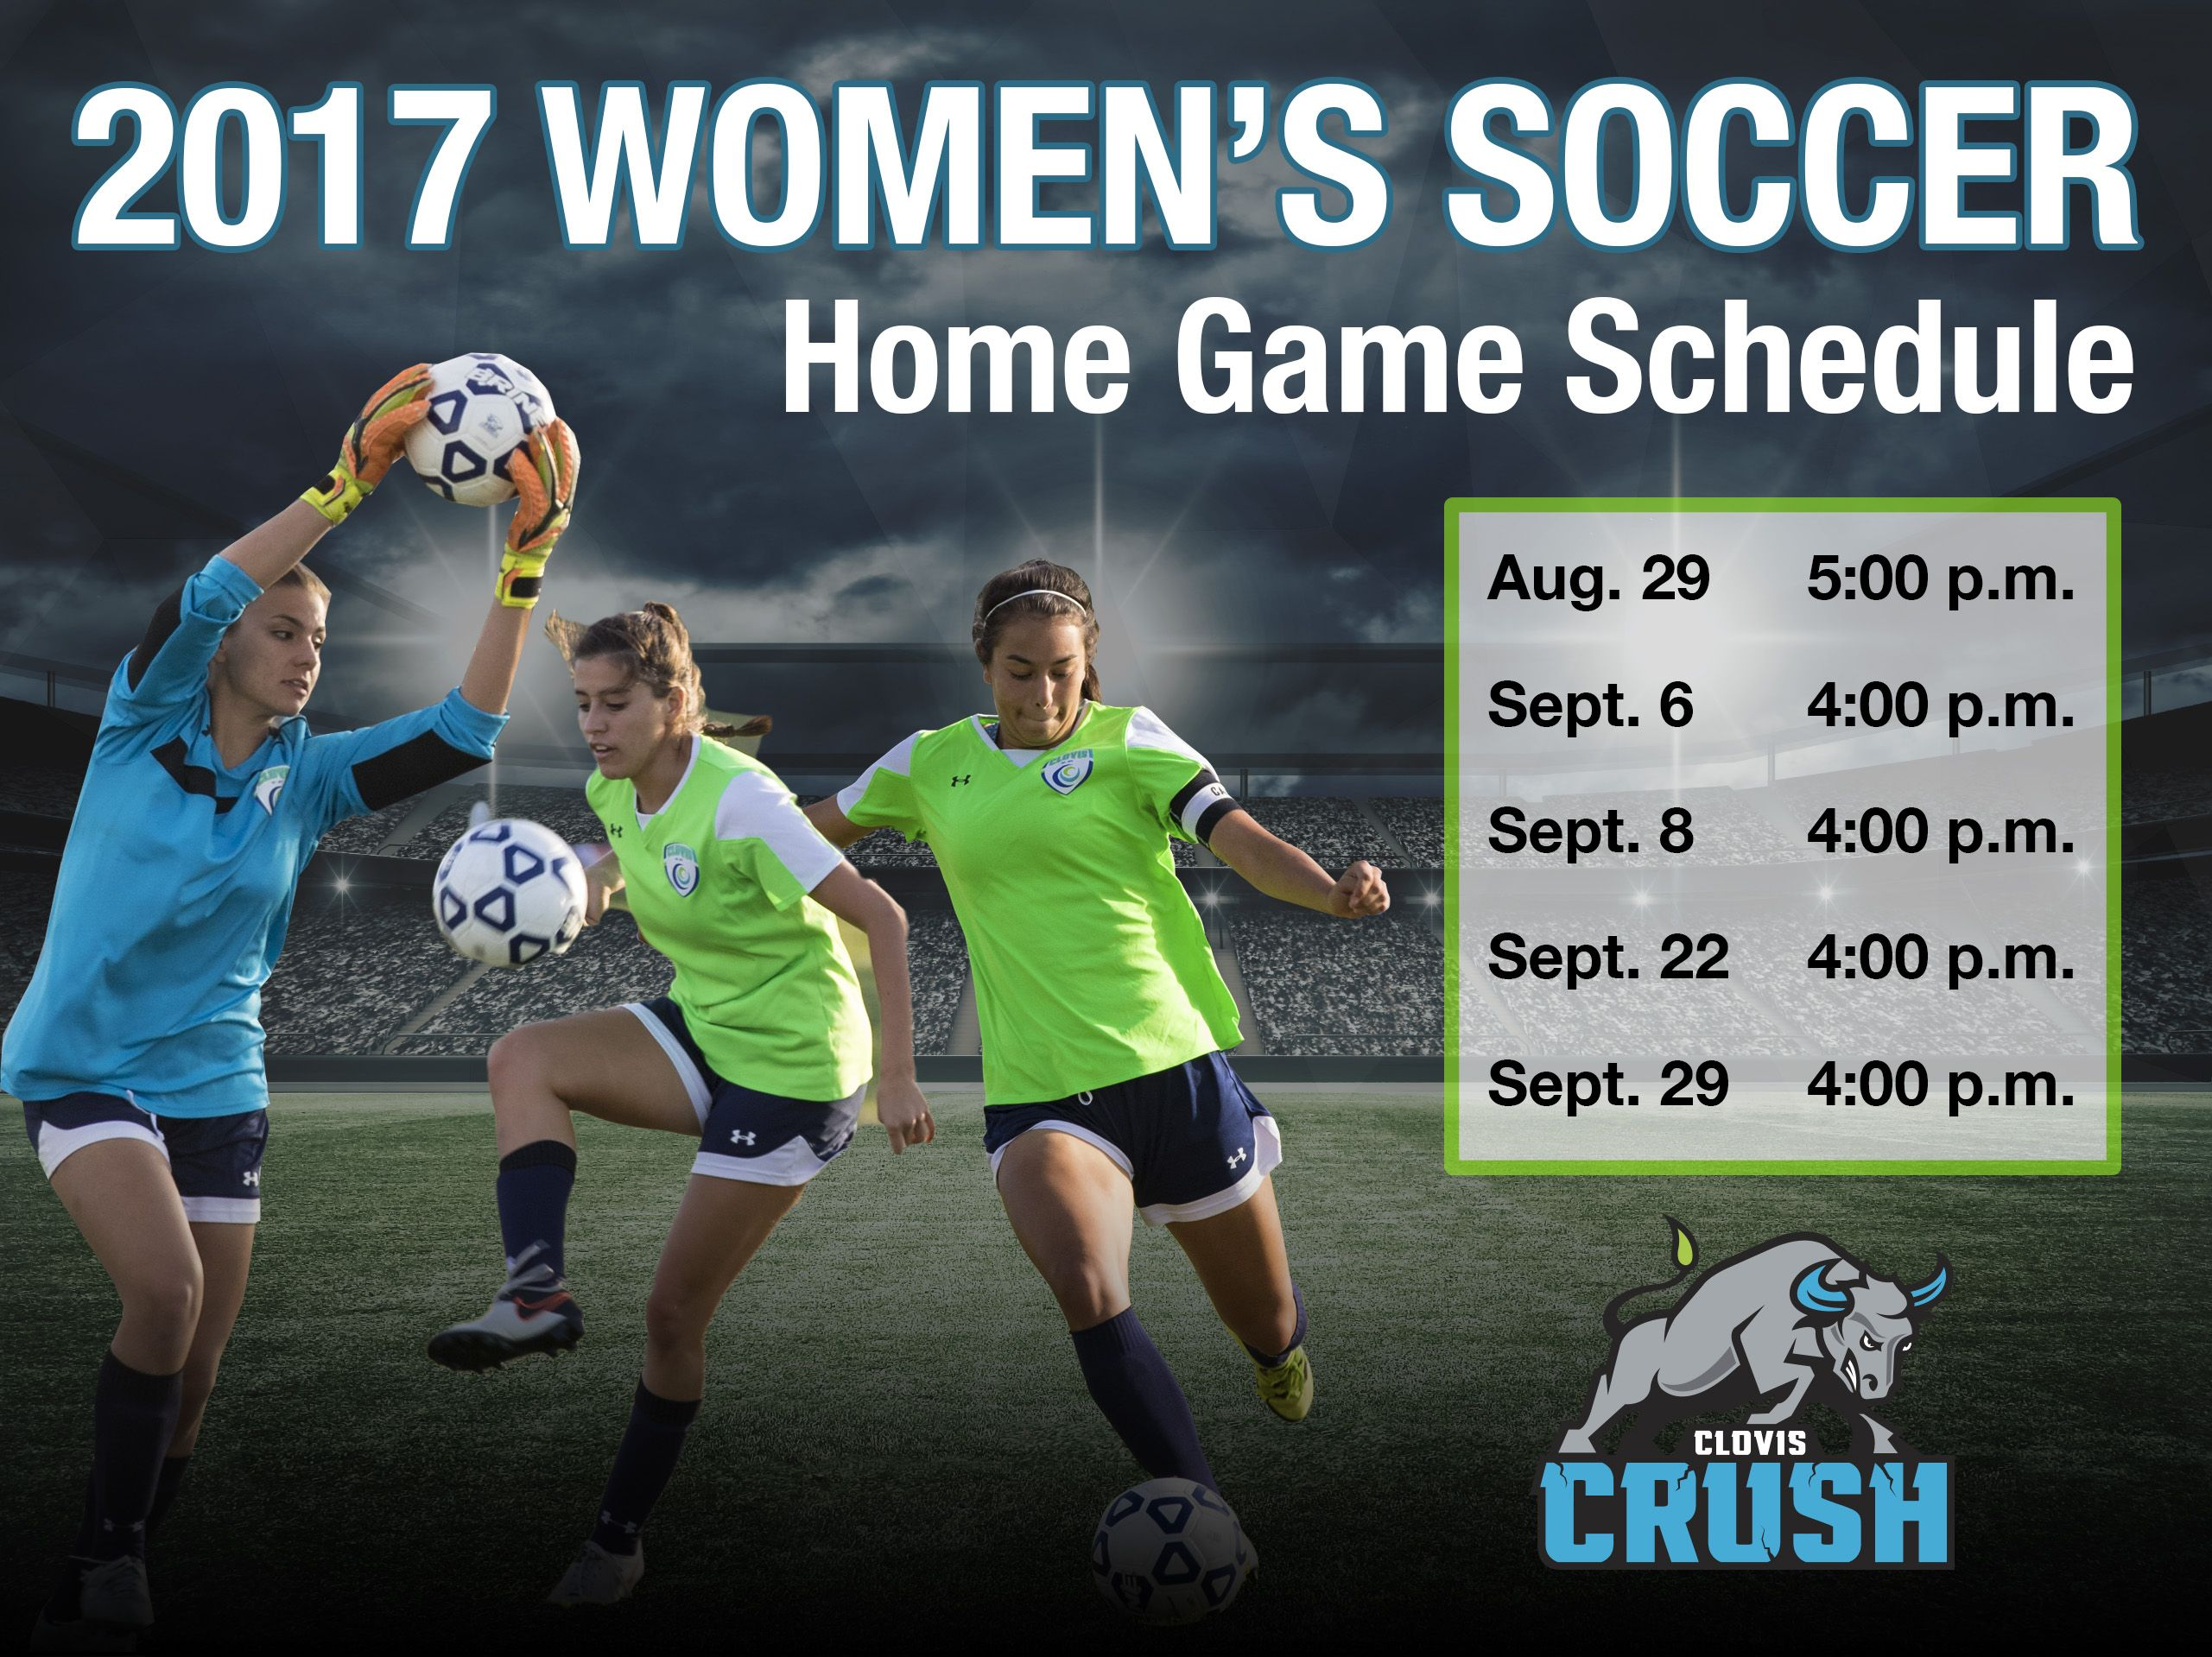 Come support our clovis crush womens soccer team at the